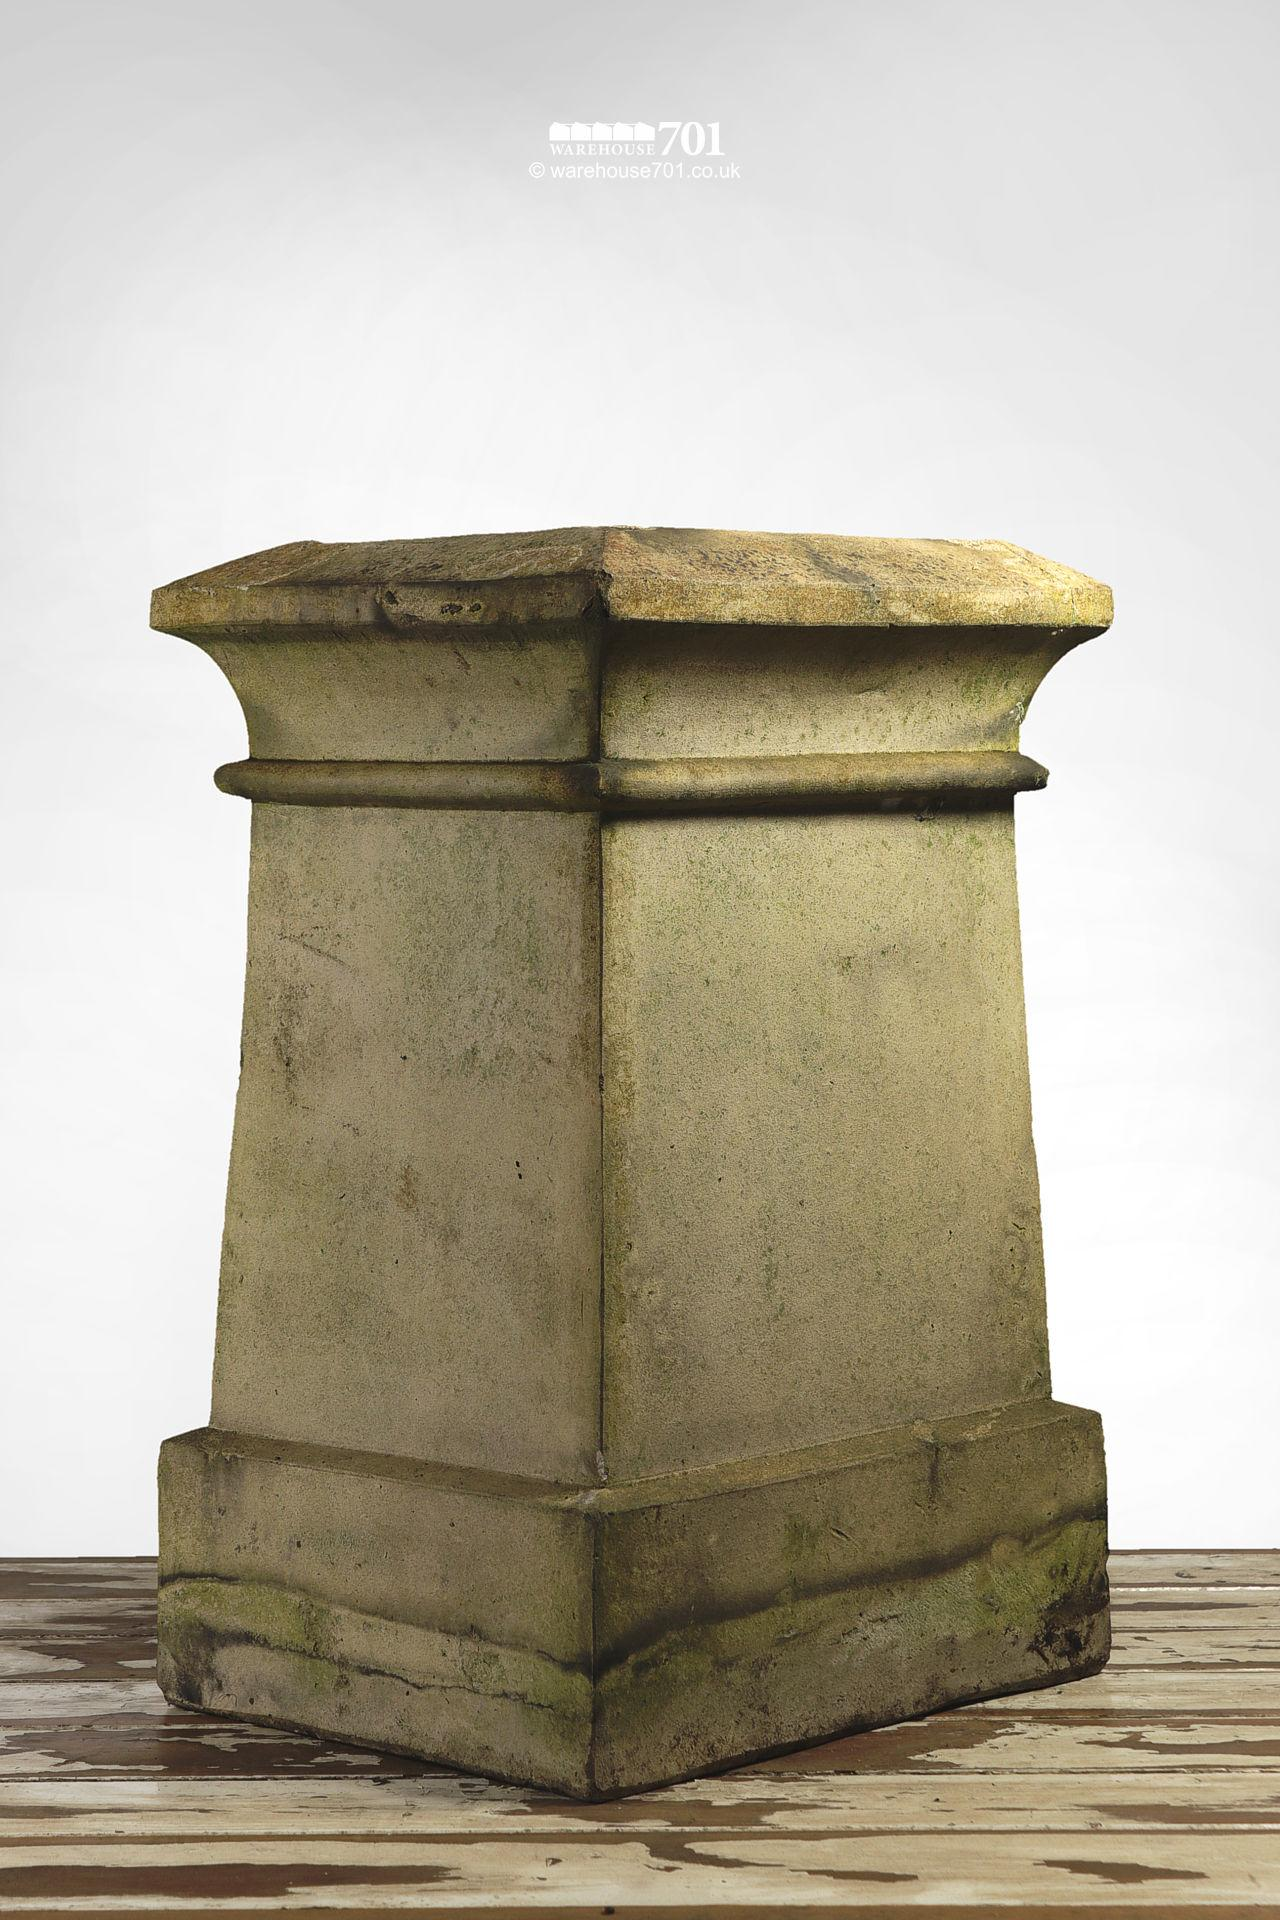 Reclaimed Rectangular Buff or Cream Colour Chimney Pot with Single Rib